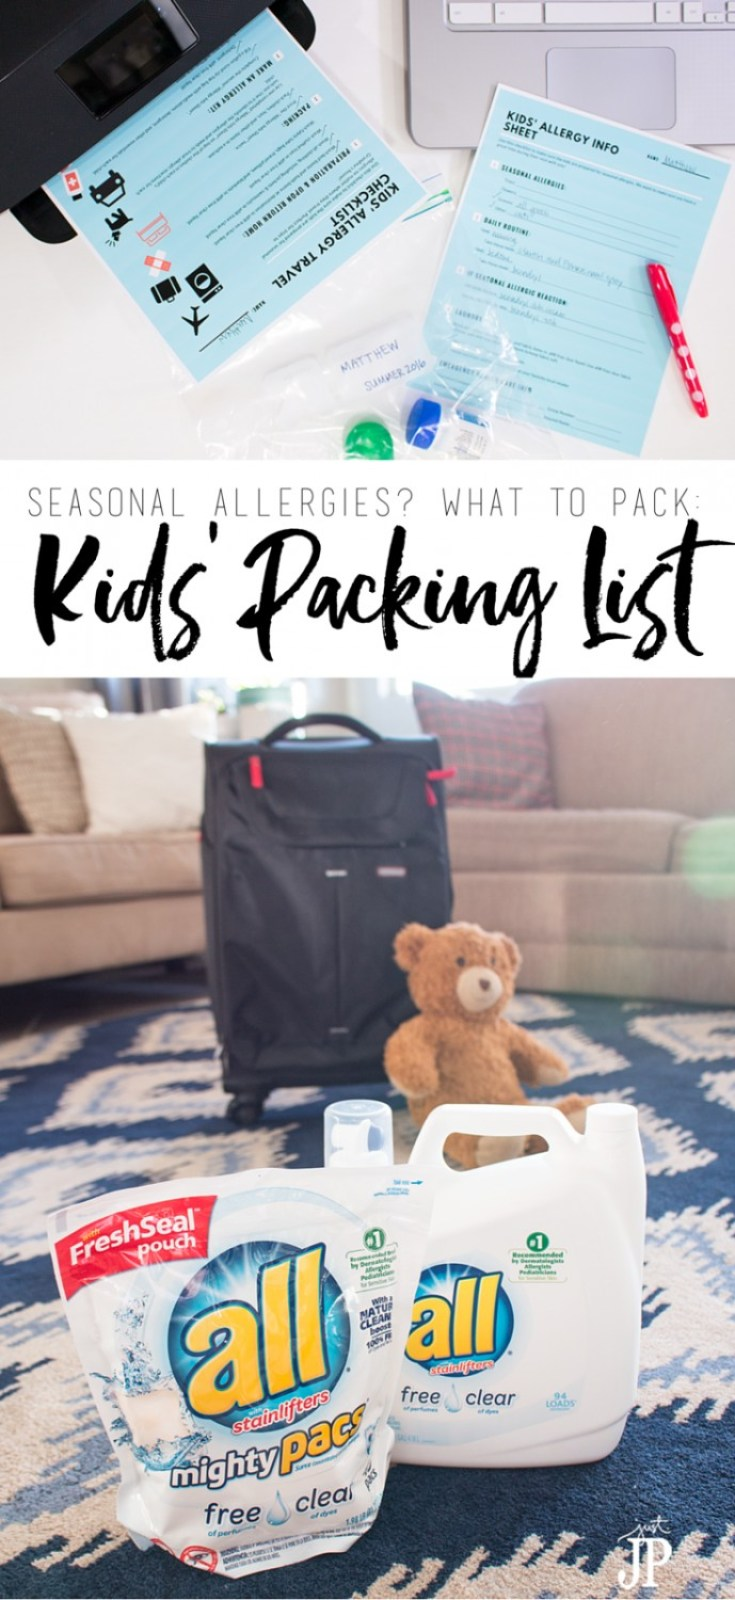 Kids going to Grandma's house this summer? Packing for kids with seasonal allergies can be a challenge. Get this FREE printable checklist so you and Grandma can be prepared for the kids to visit with little worry about seasonal allergy attacks. Travel packing list for kids with seasonal allergies #FreeToBe ⋆ just jp http://buff.ly/28HtmGD [ad]